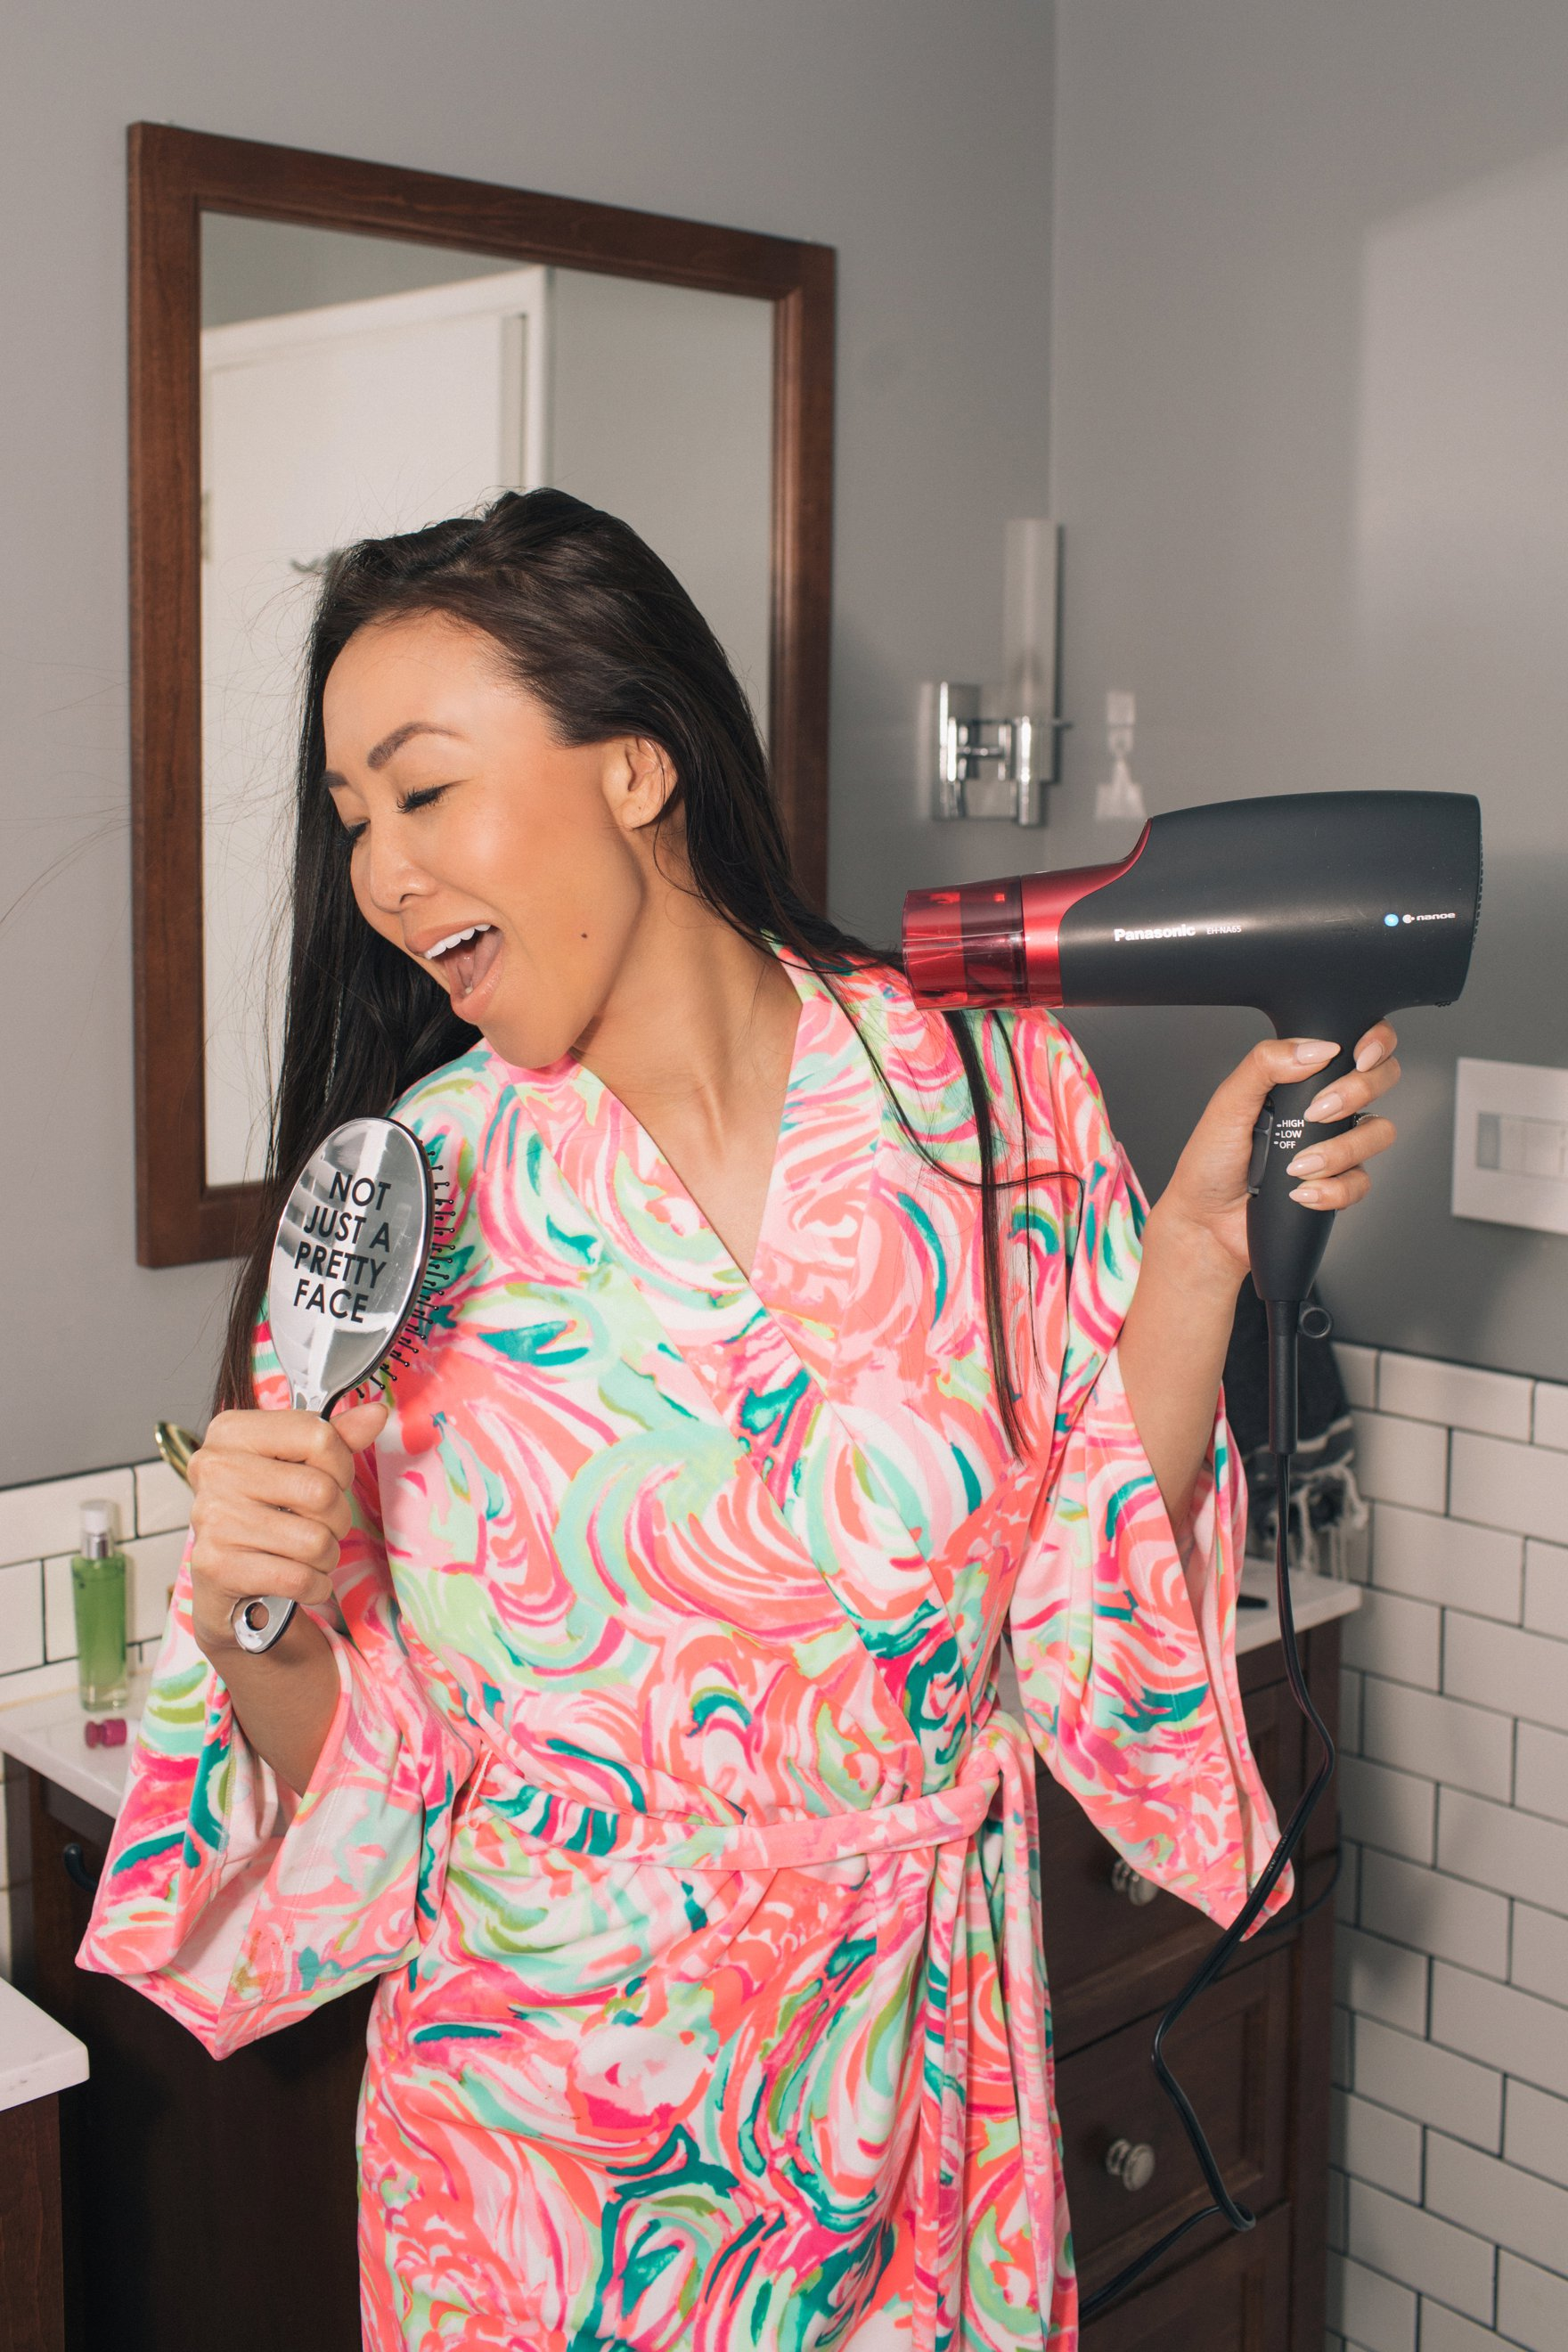 Featuring Panasonic nanoe™ hair dryer wearing pink robe